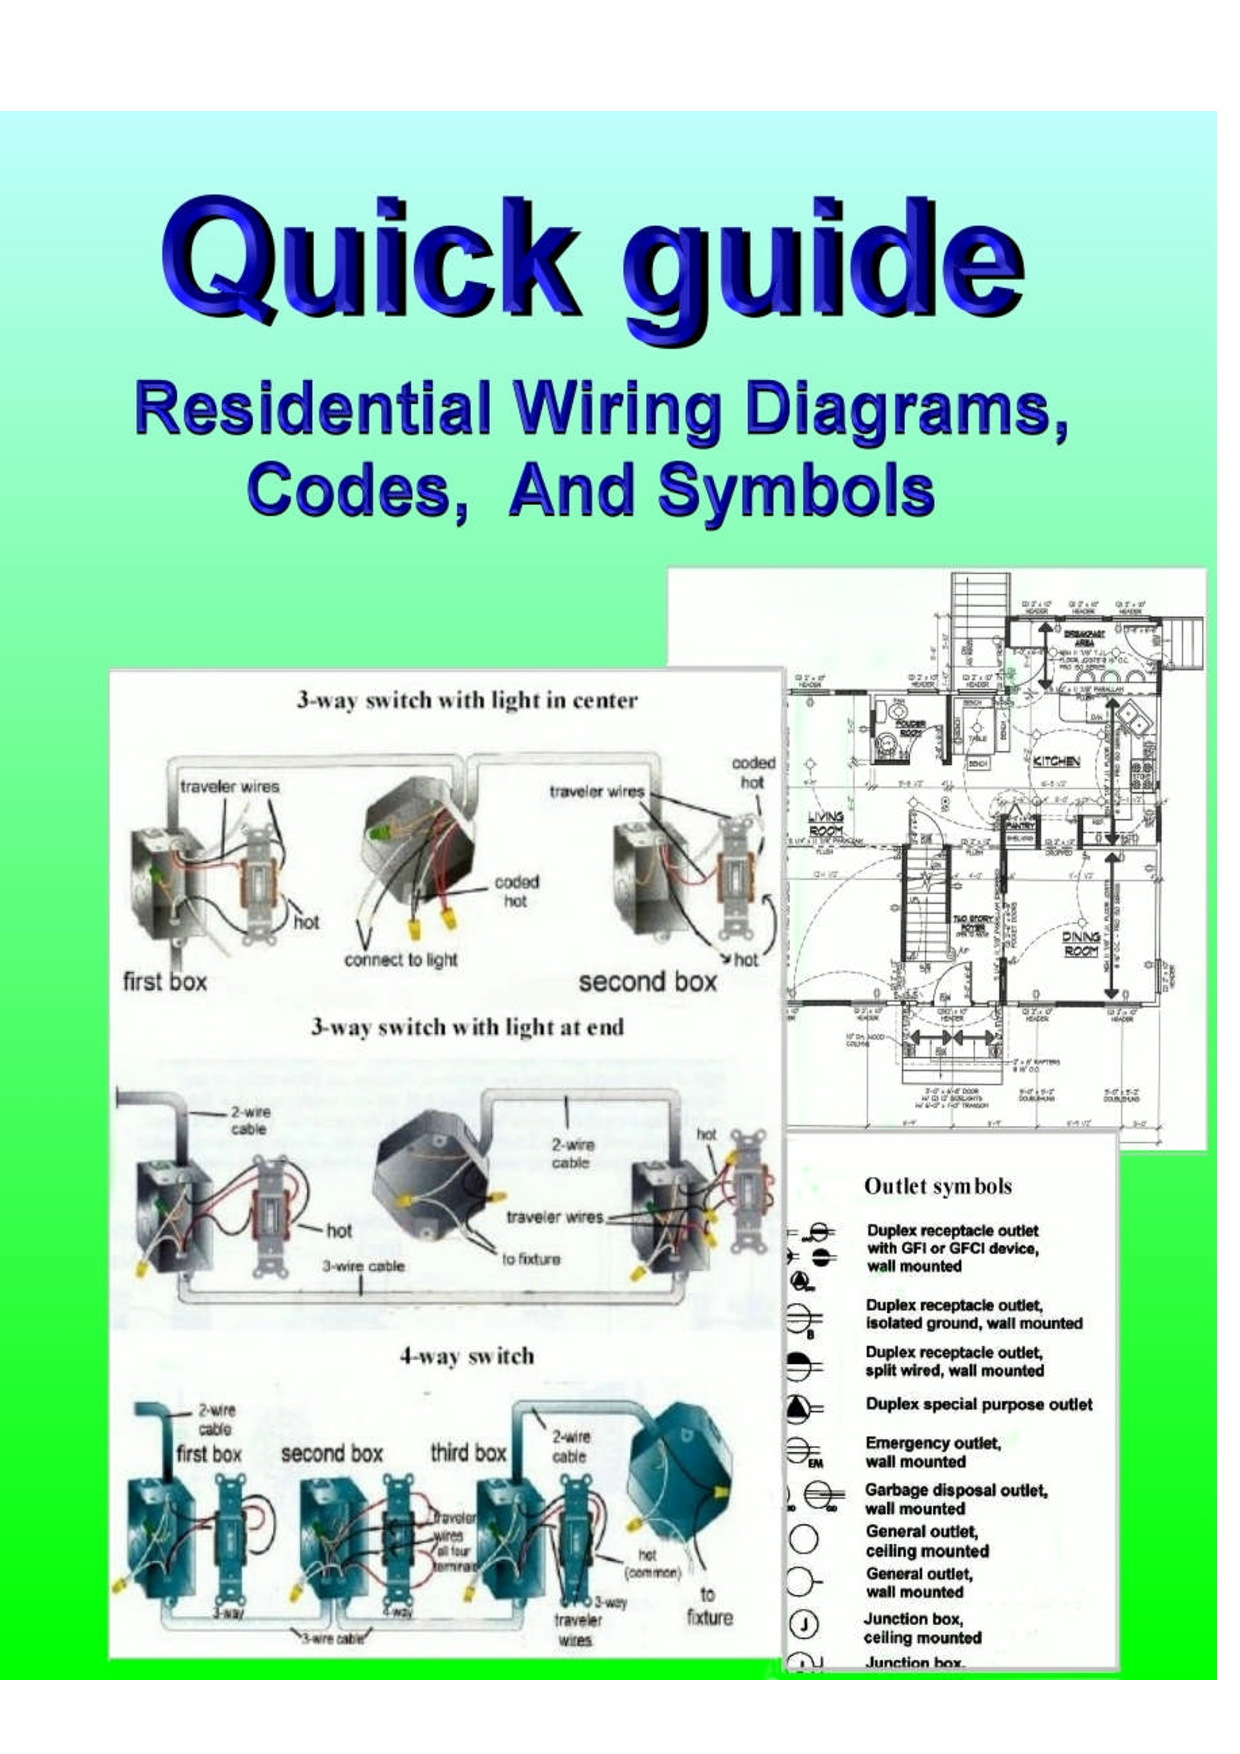 home electrical wiring diagrams informational pinterest rh pinterest com best residential electrical wiring book Residential Electrical Wiring Diagrams